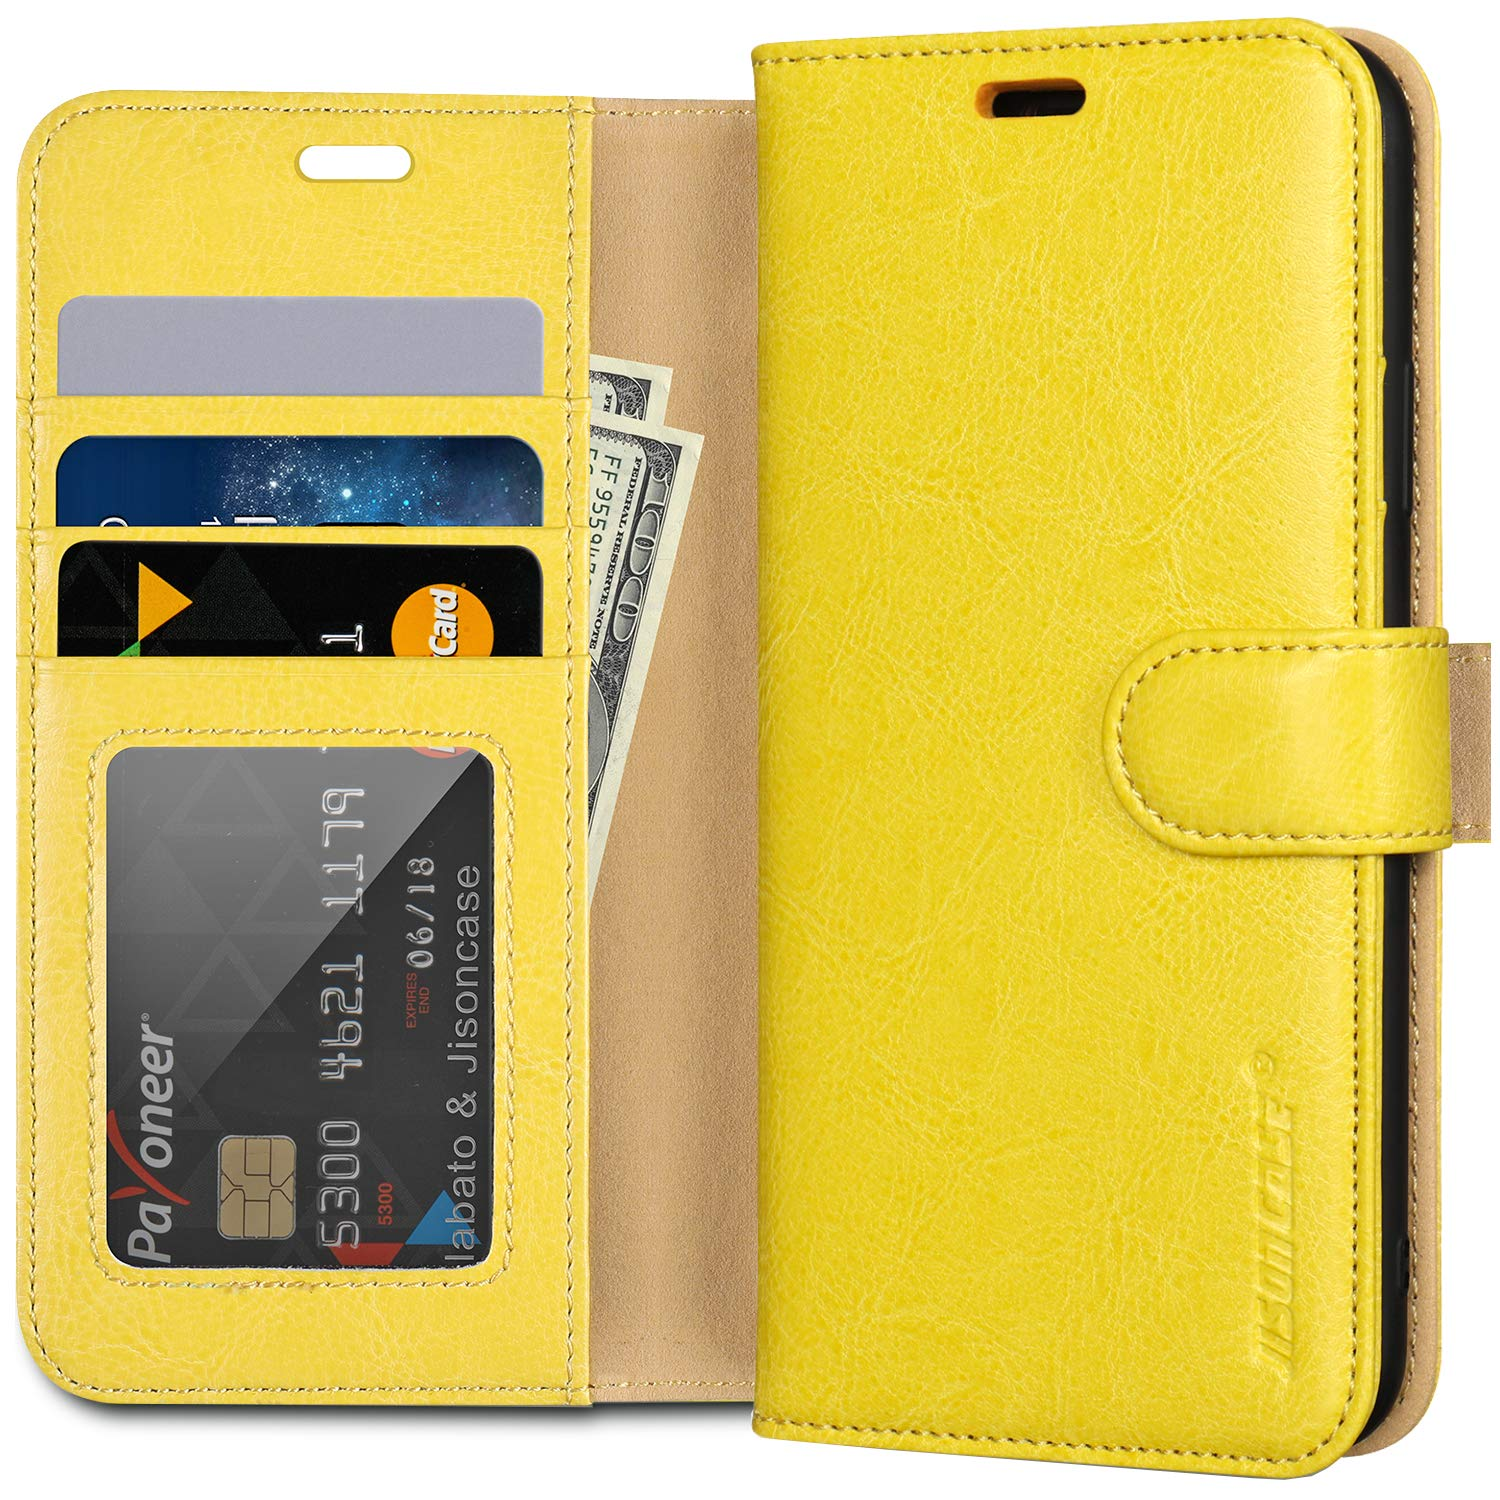 """JISCONCASE iPhone 11 Pro Max Wallet Case, Genuine Leather Flip Case iPhone 11 Max with Card Holder,Wireless Charging & Magnetic Closure Wallet Cover for iPhone 11 Pro Max,Yellow 6.5"""""""